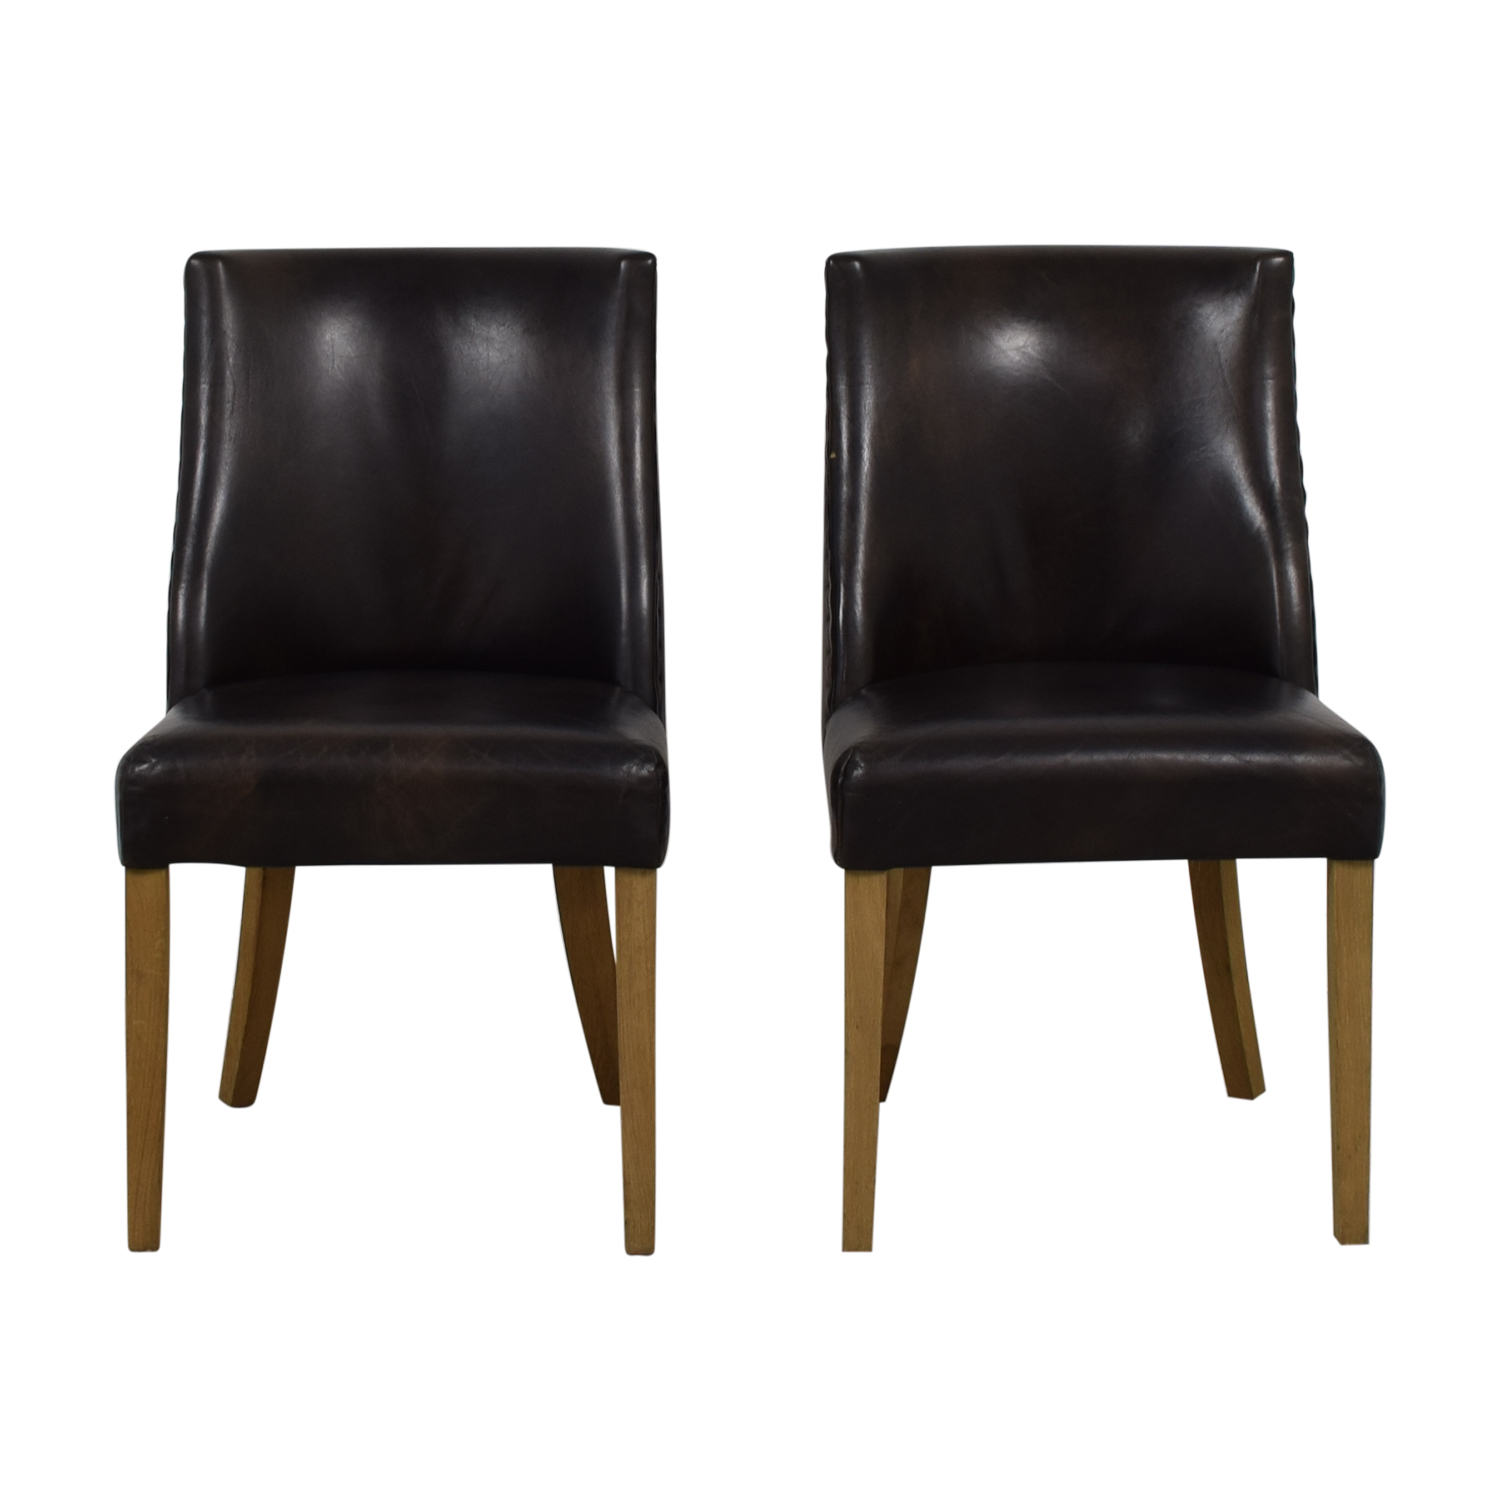 Restoration Hardware Restoration Hardware Brown Leather Dining Chairs price